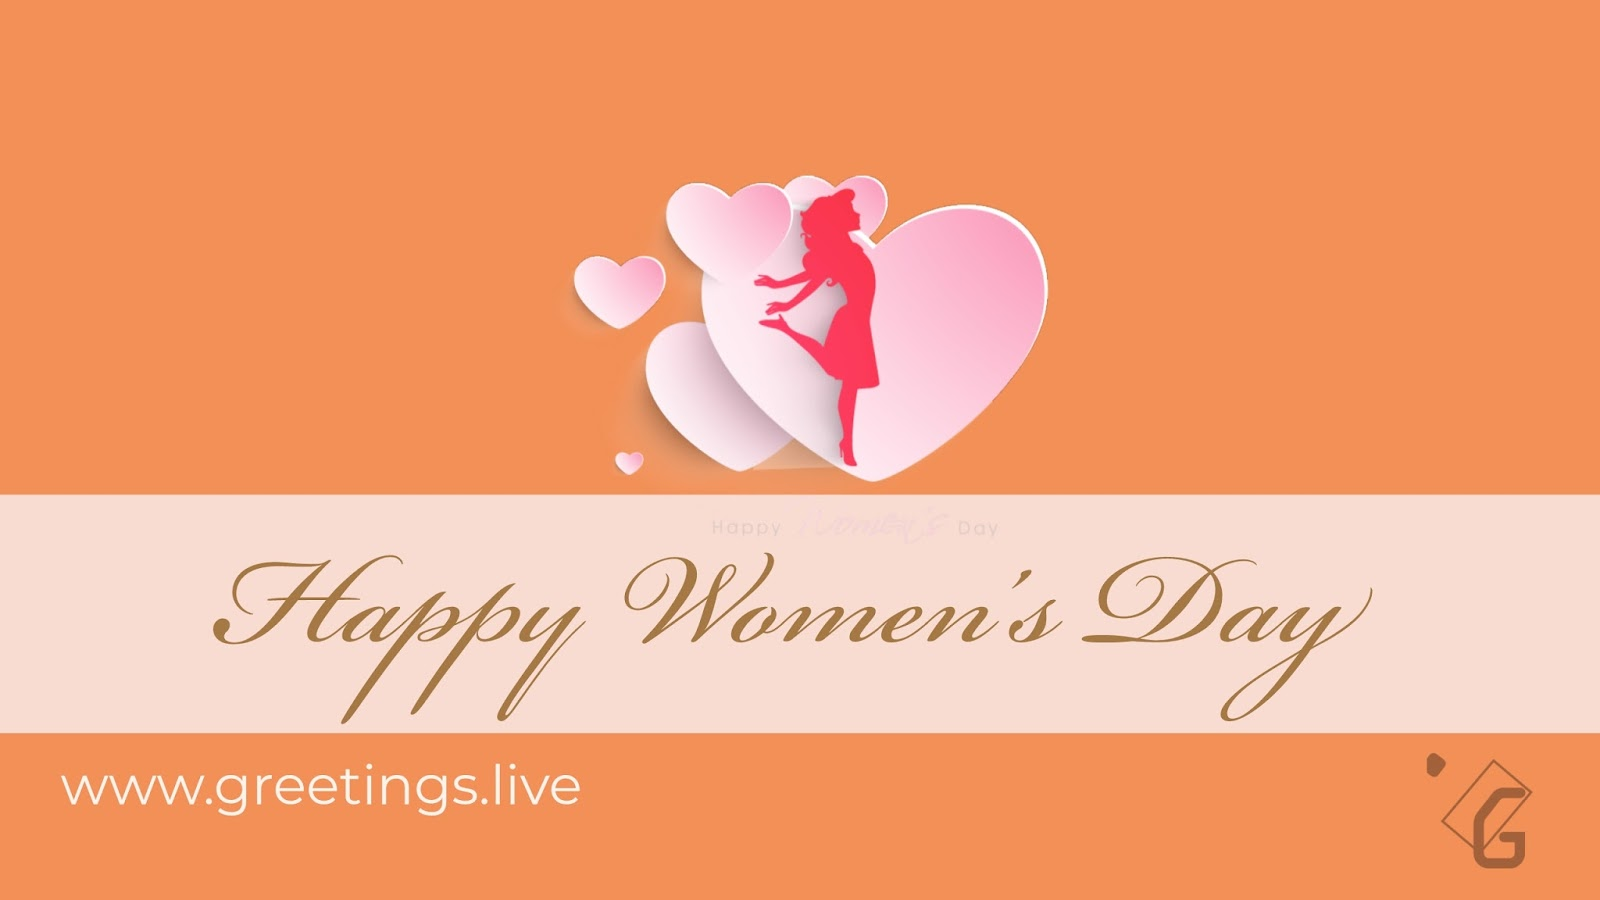 Greetingsve hd images love smile birthday wishes free download international happy womens day 2018 greetings kristyandbryce Gallery